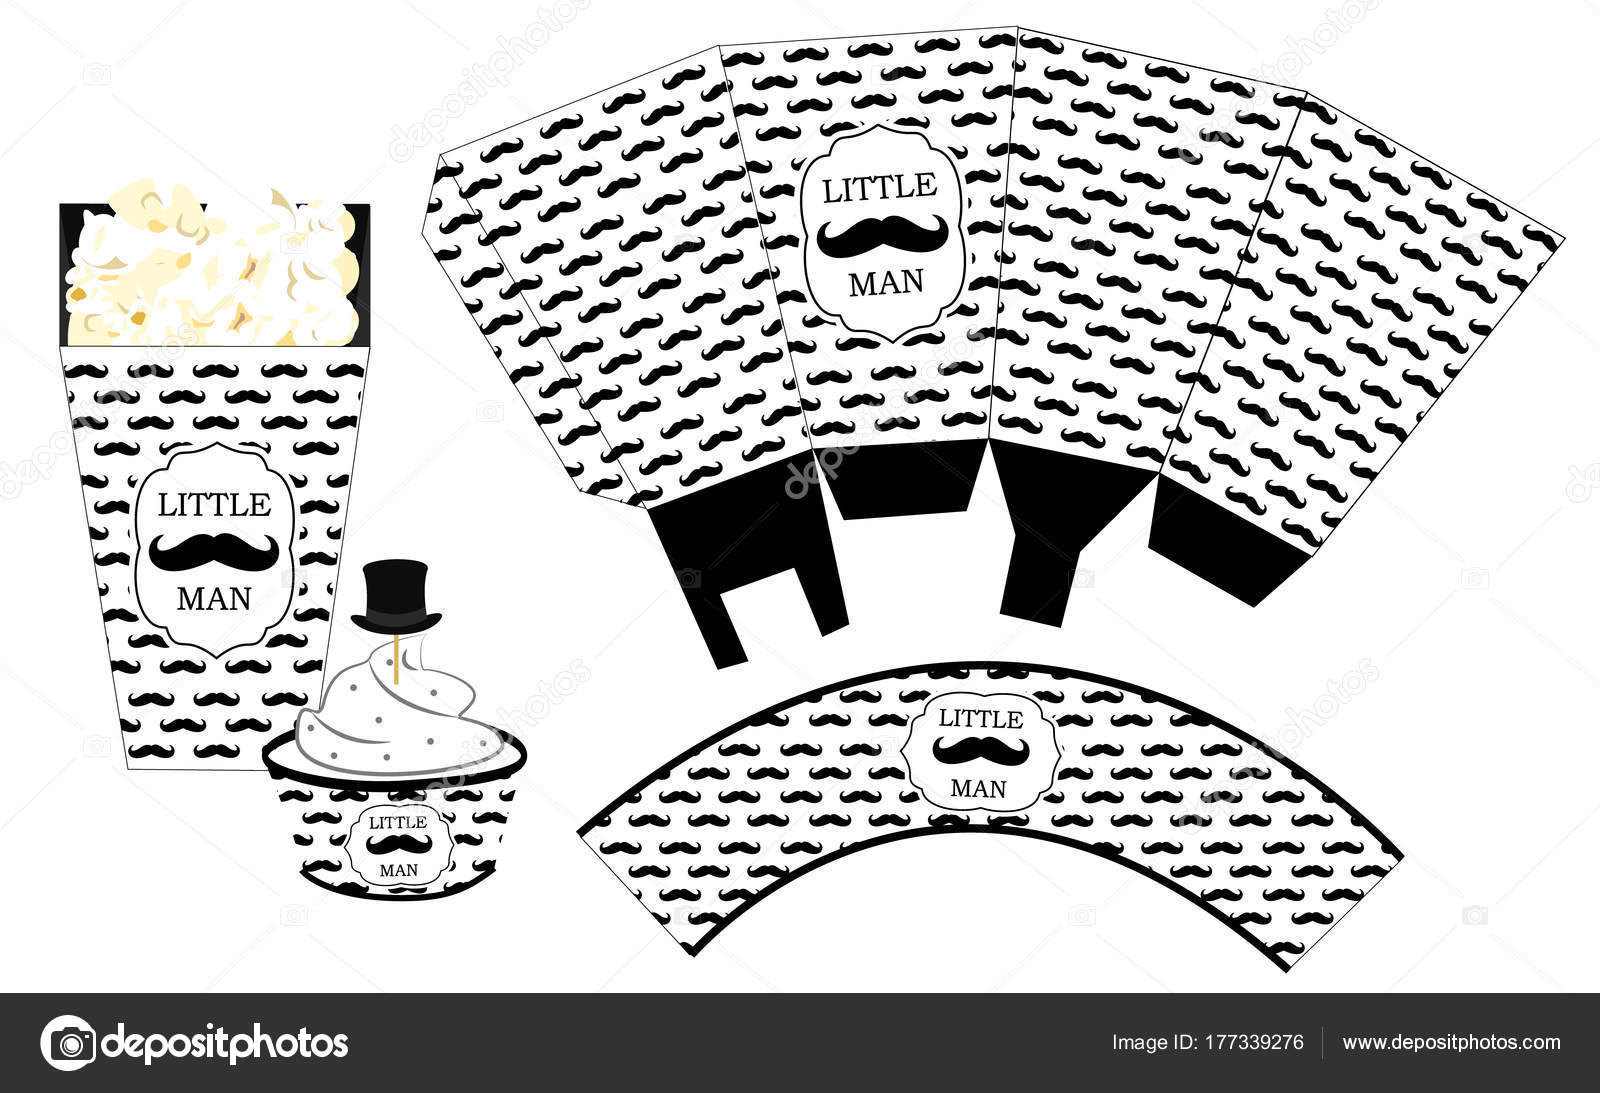 photo relating to Printable Popcorn Template referred to as Cupcake templates printable Popcorn Paper Box Cupcake